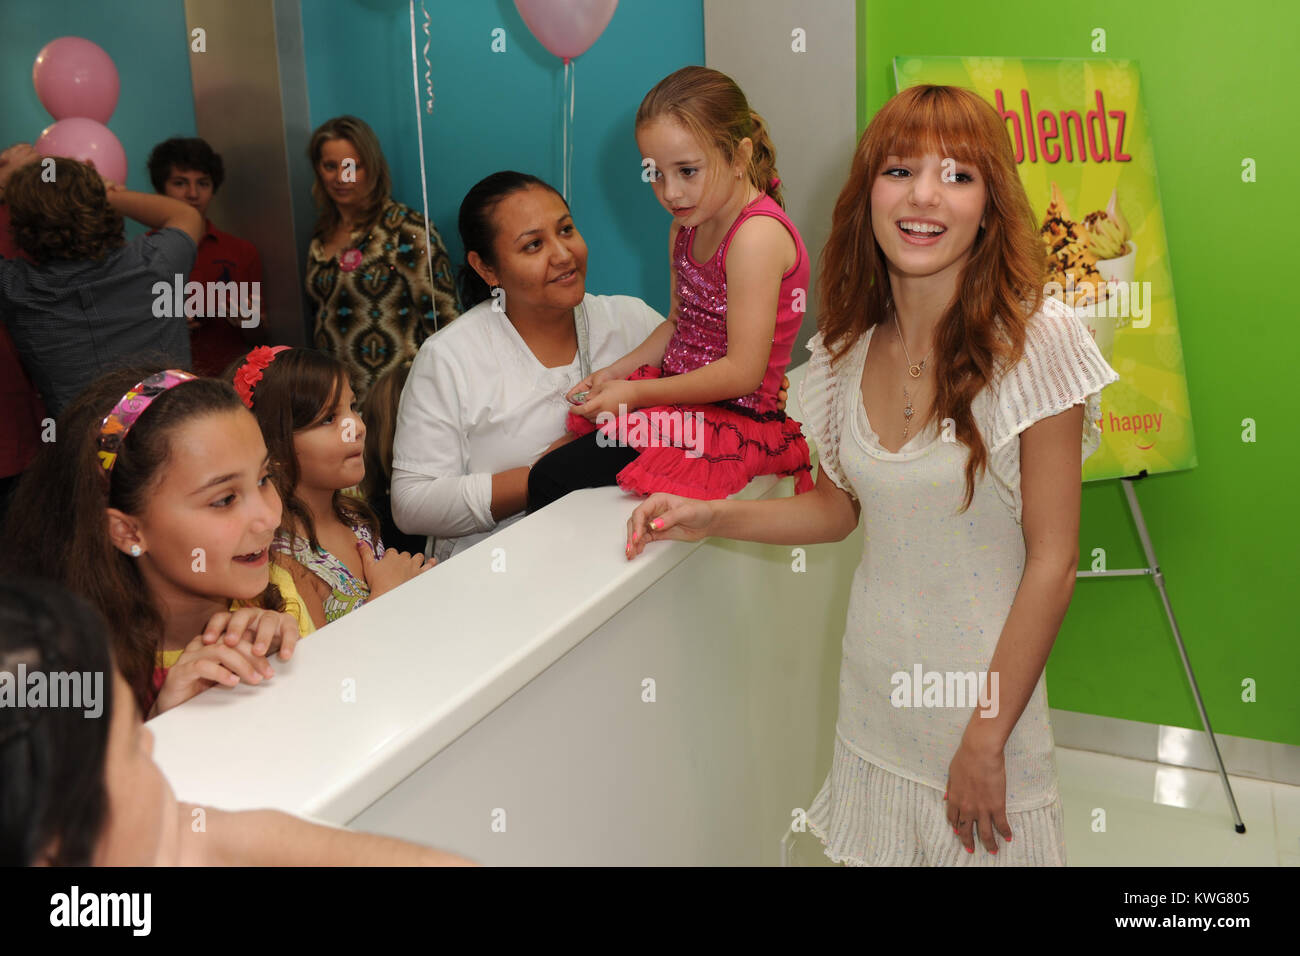 Disney Channel Star Bella Thorne Meets And Greets Fans Stock Photos